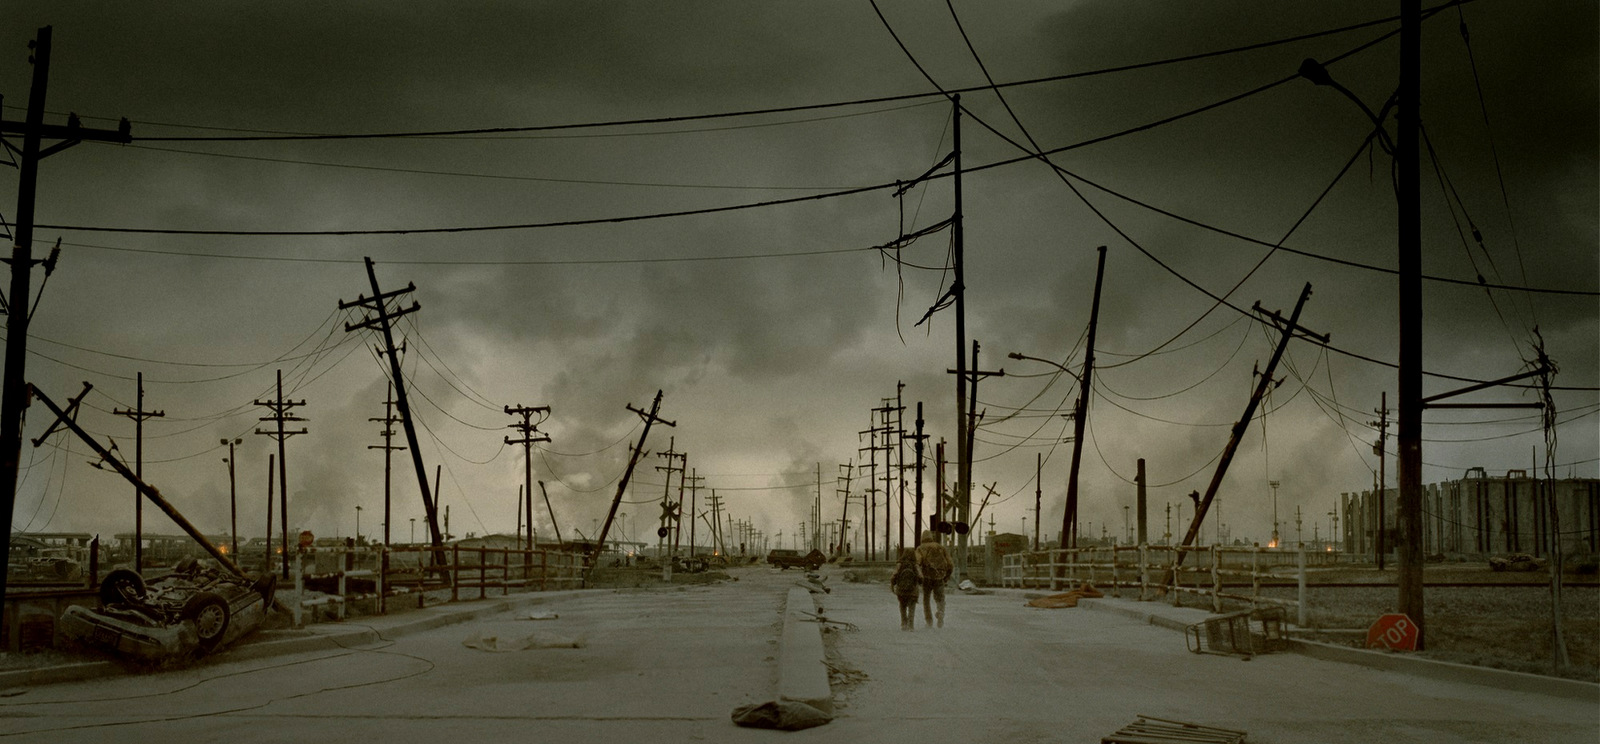 A still from the 2009 film, The Road, based on Cormac McCarthy's novel of the same name.